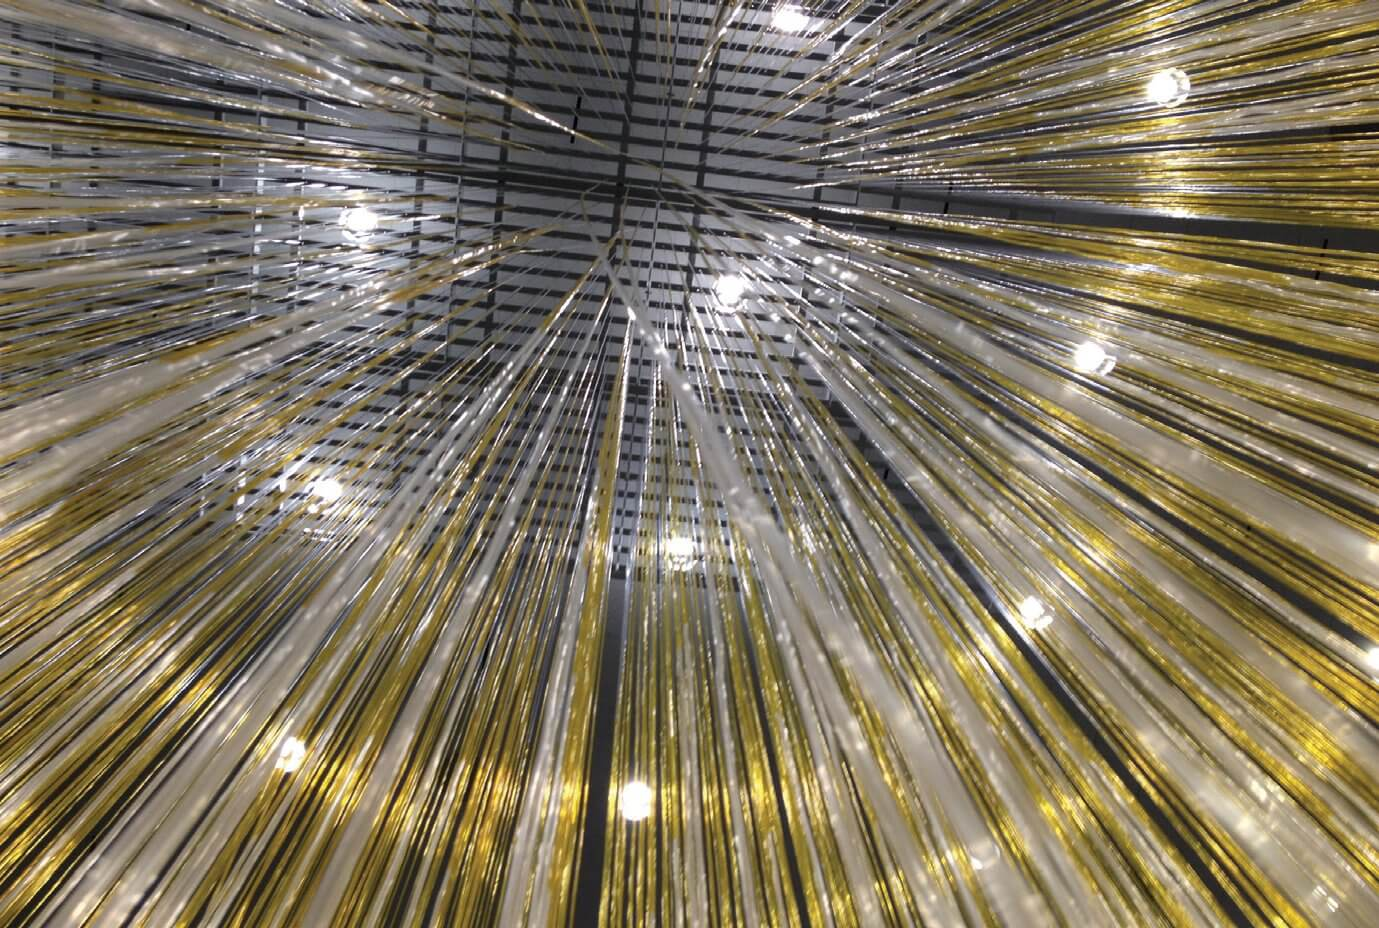 An interior view of the central section of Jesús Rafael Soto's Houston Penetrable, at the Museum of Fine Arts, Houston. (Credit: Museum of Fine Arts, Houston)